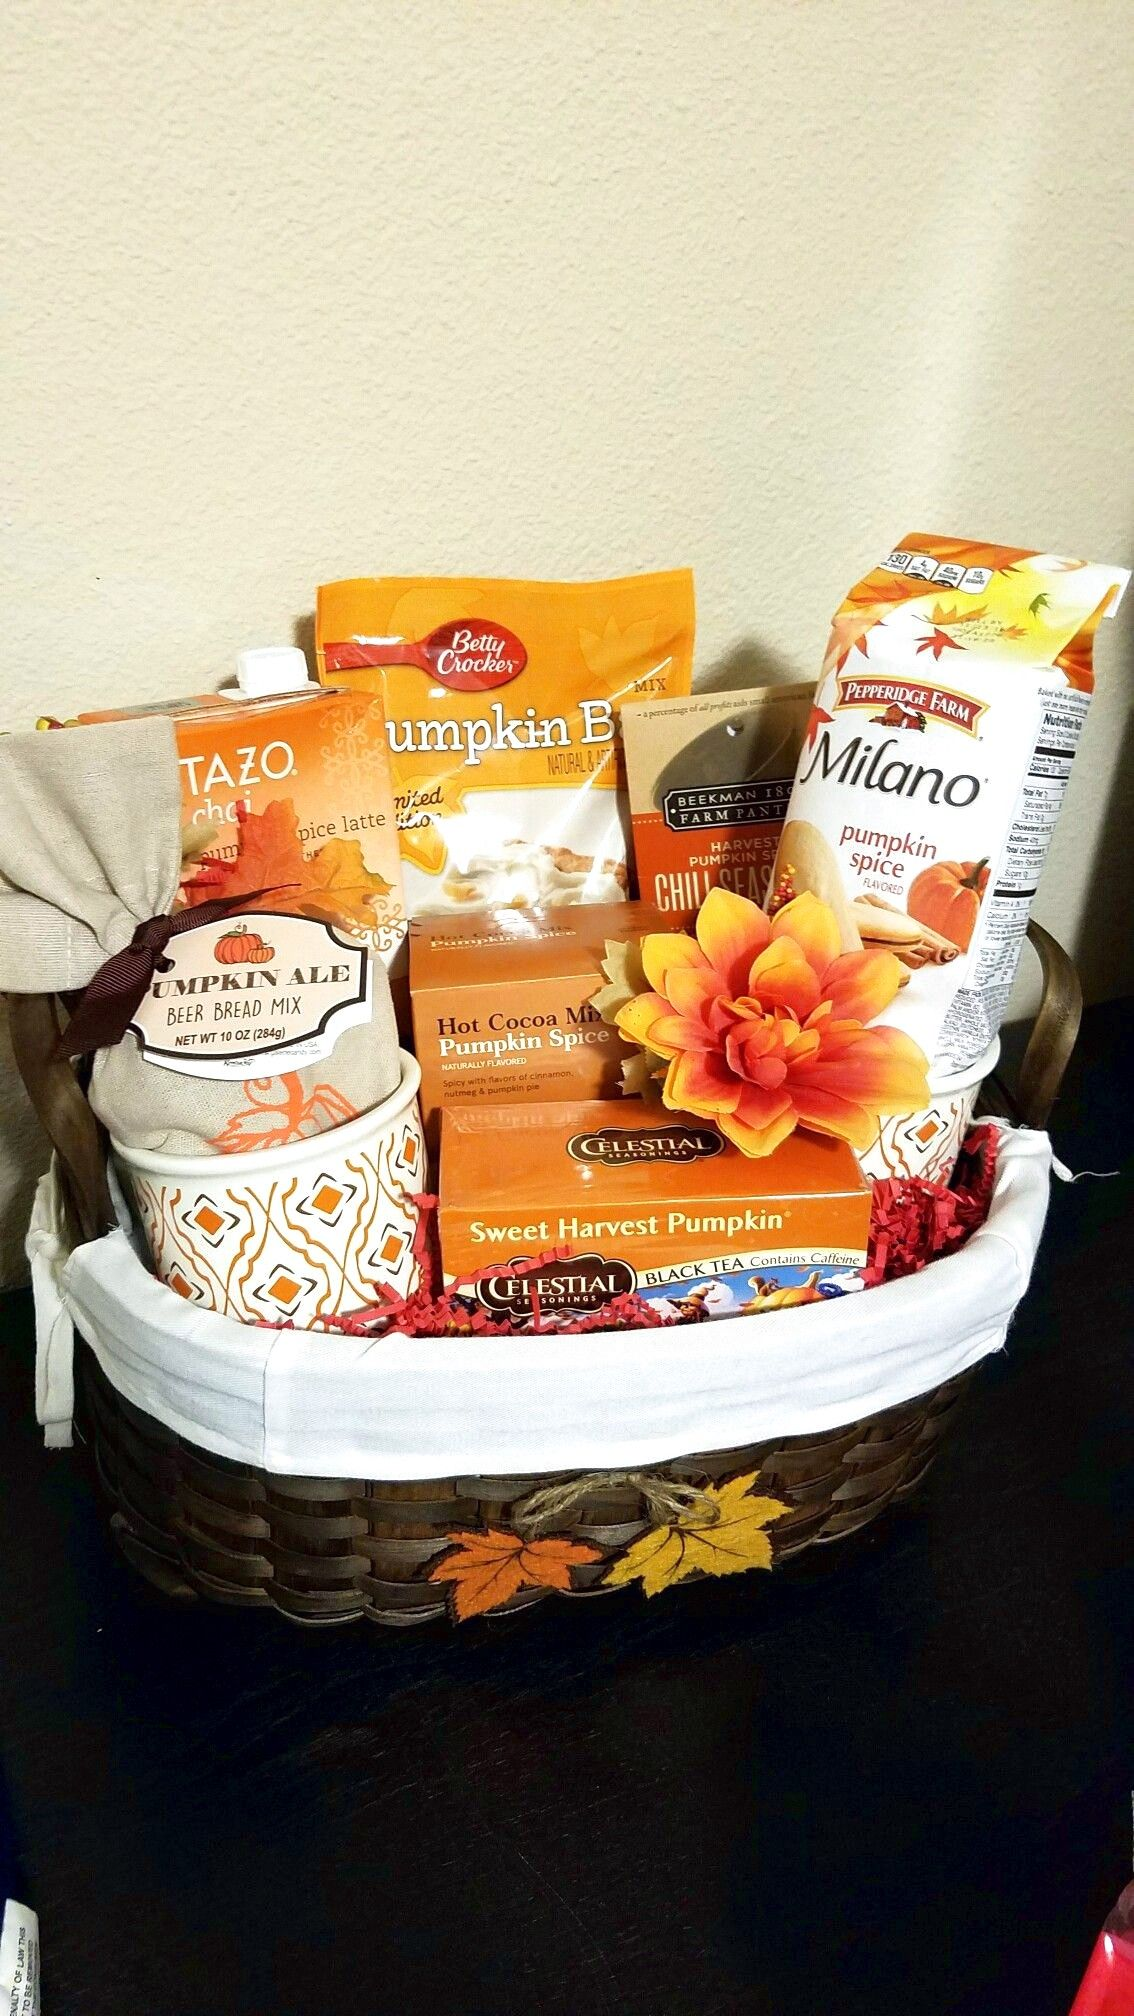 Halloween Gift Basket Ideas For Adults.33 Halloween Gift Basket Ideas For Adults Be Given To Your Loved